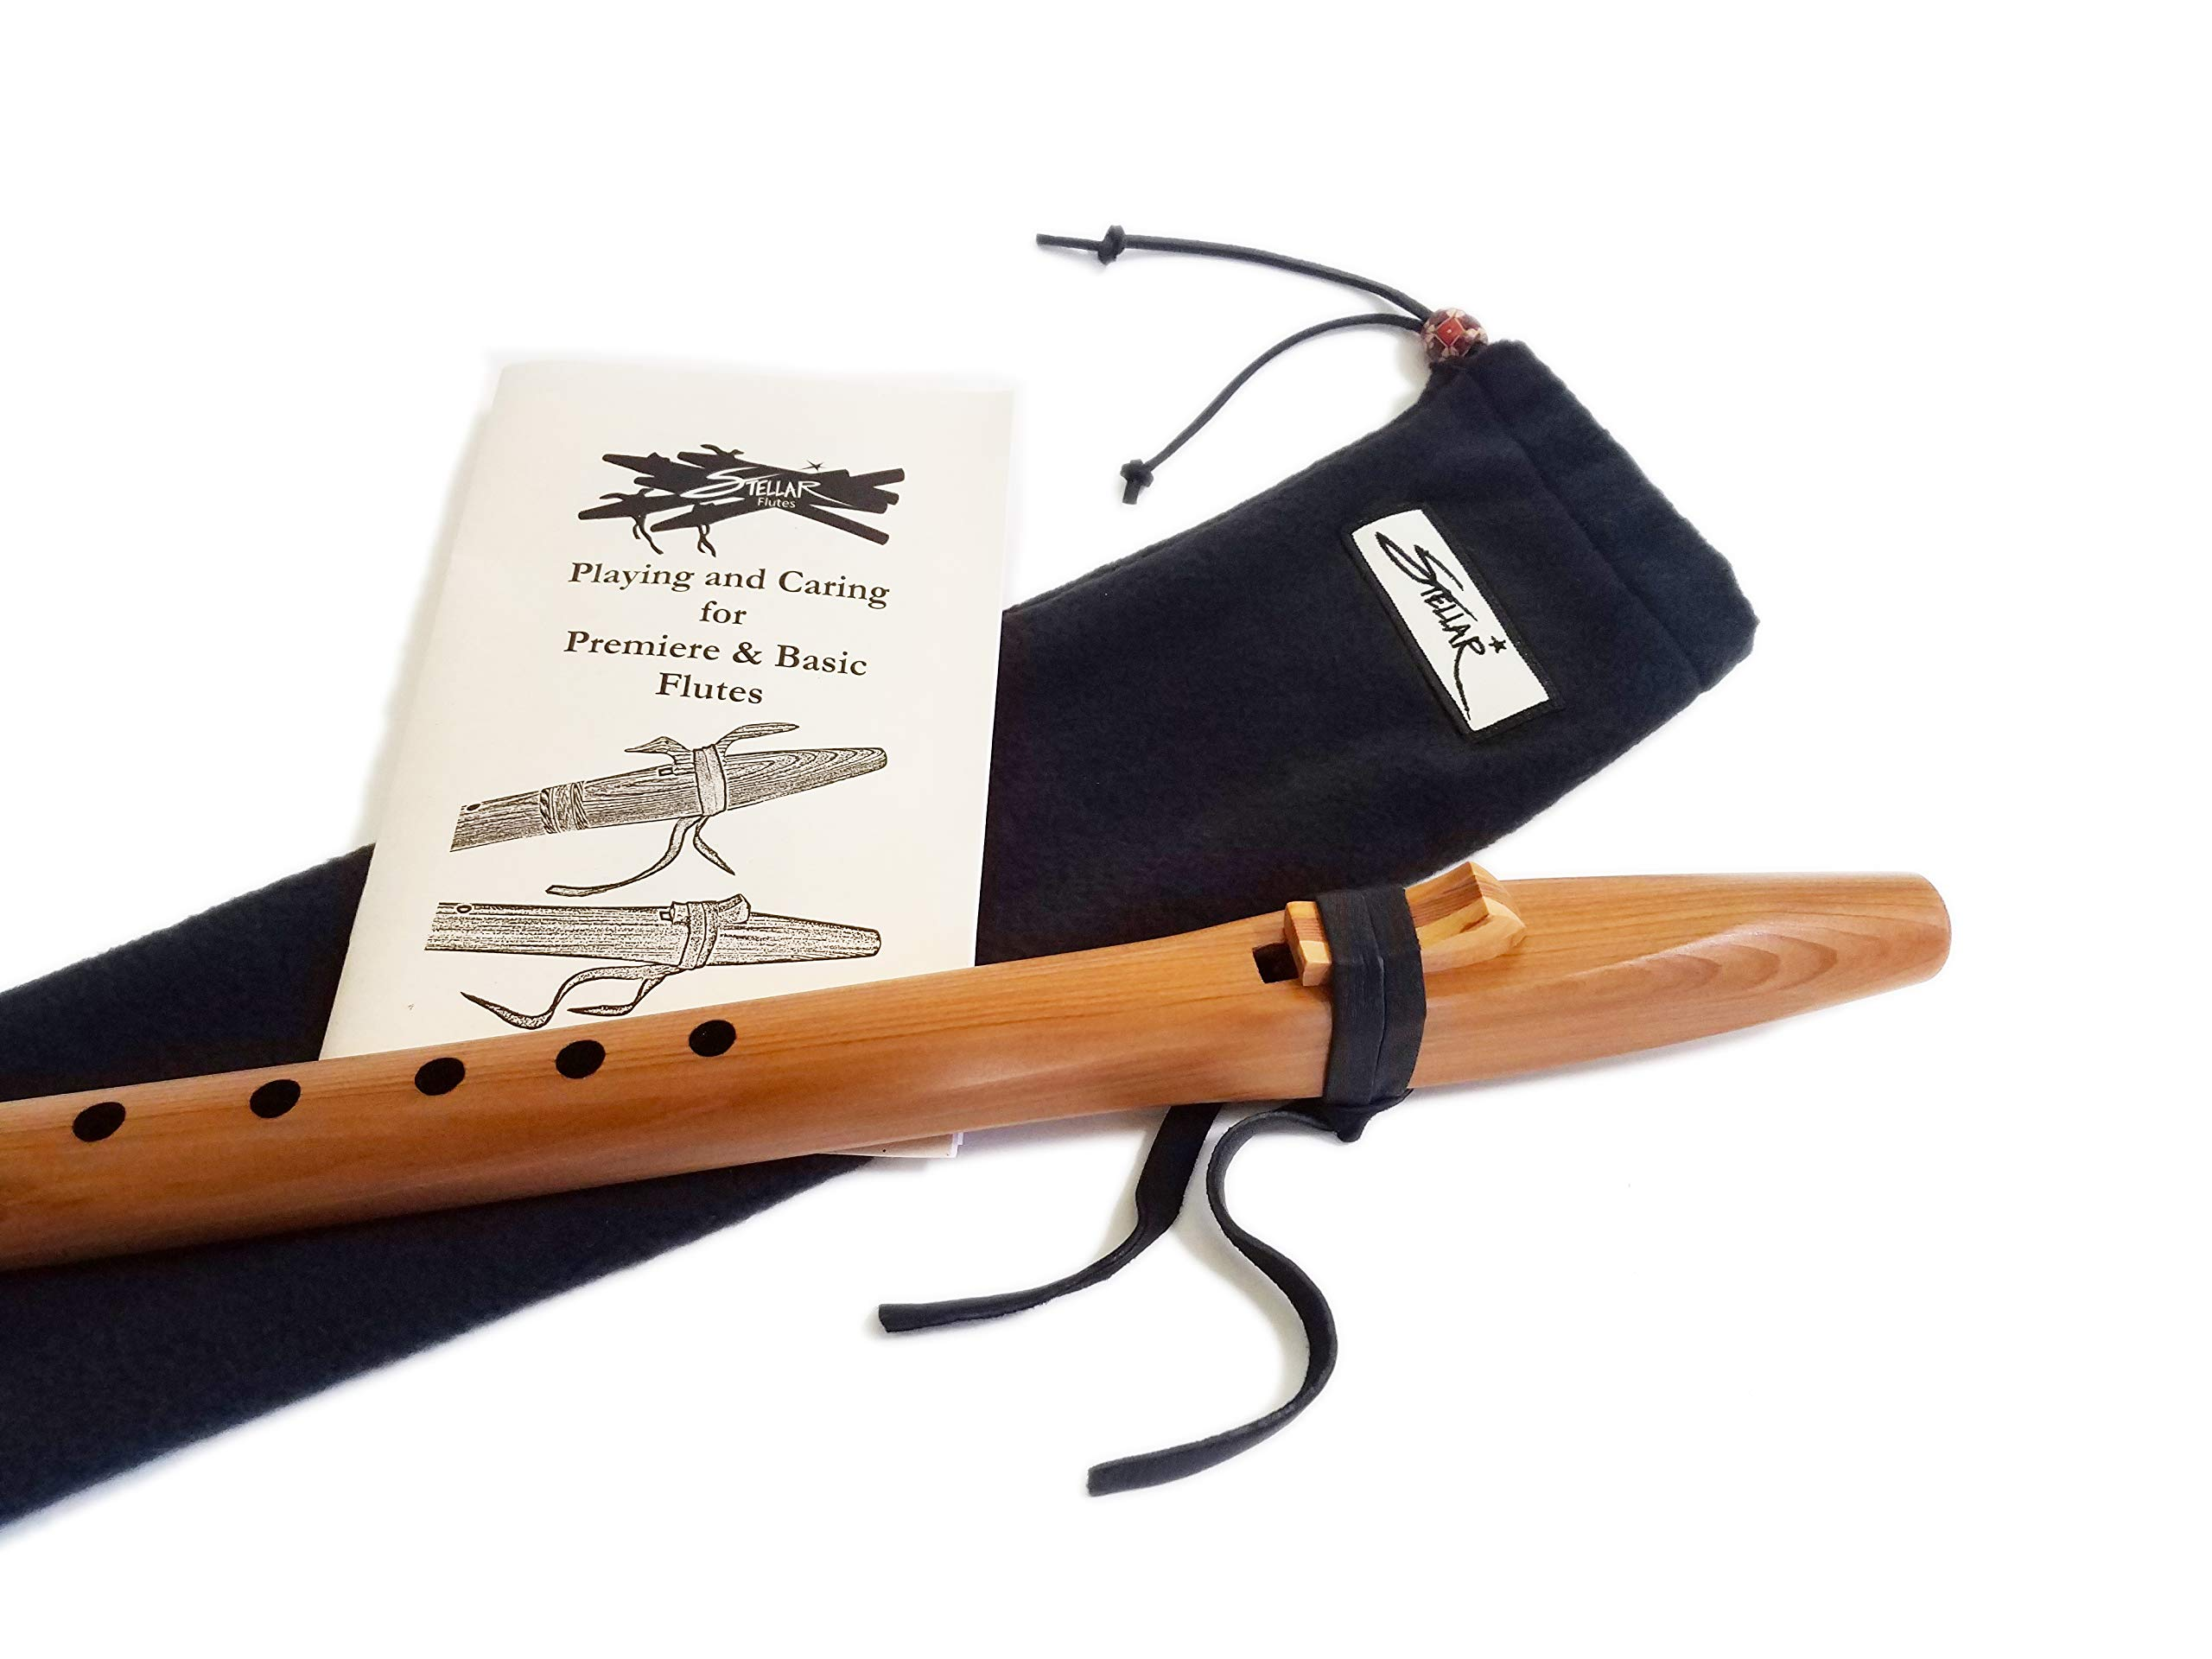 Stellar Basic Flute Key of A - Native American Style Flute with Carrying Case (Natural Heartwood Cedar)